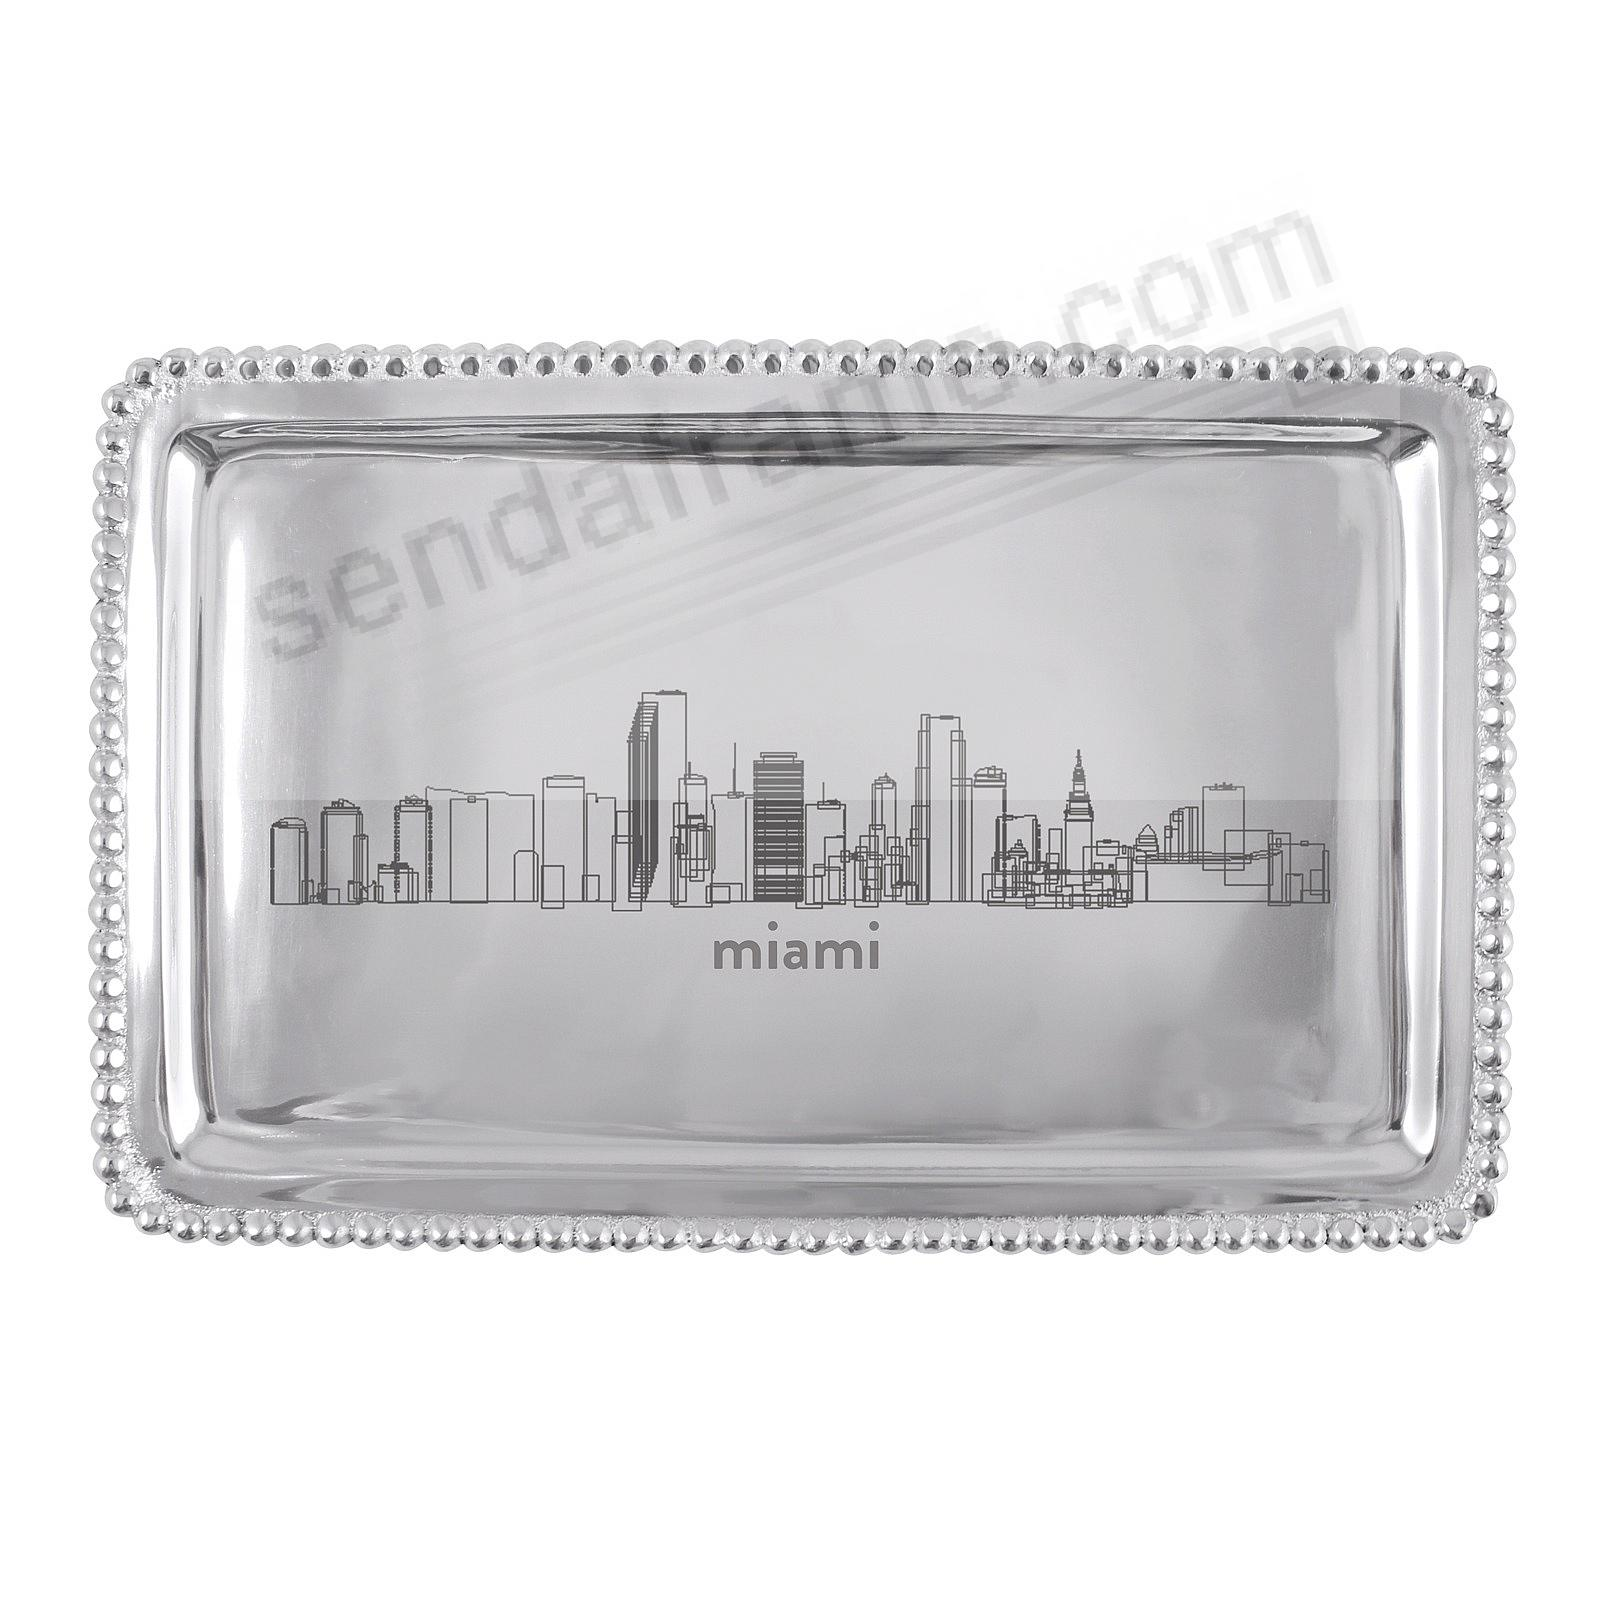 The MIAMI-FL CITYSCAPE BEADED BUFFET TRAY crafted by Mariposa®